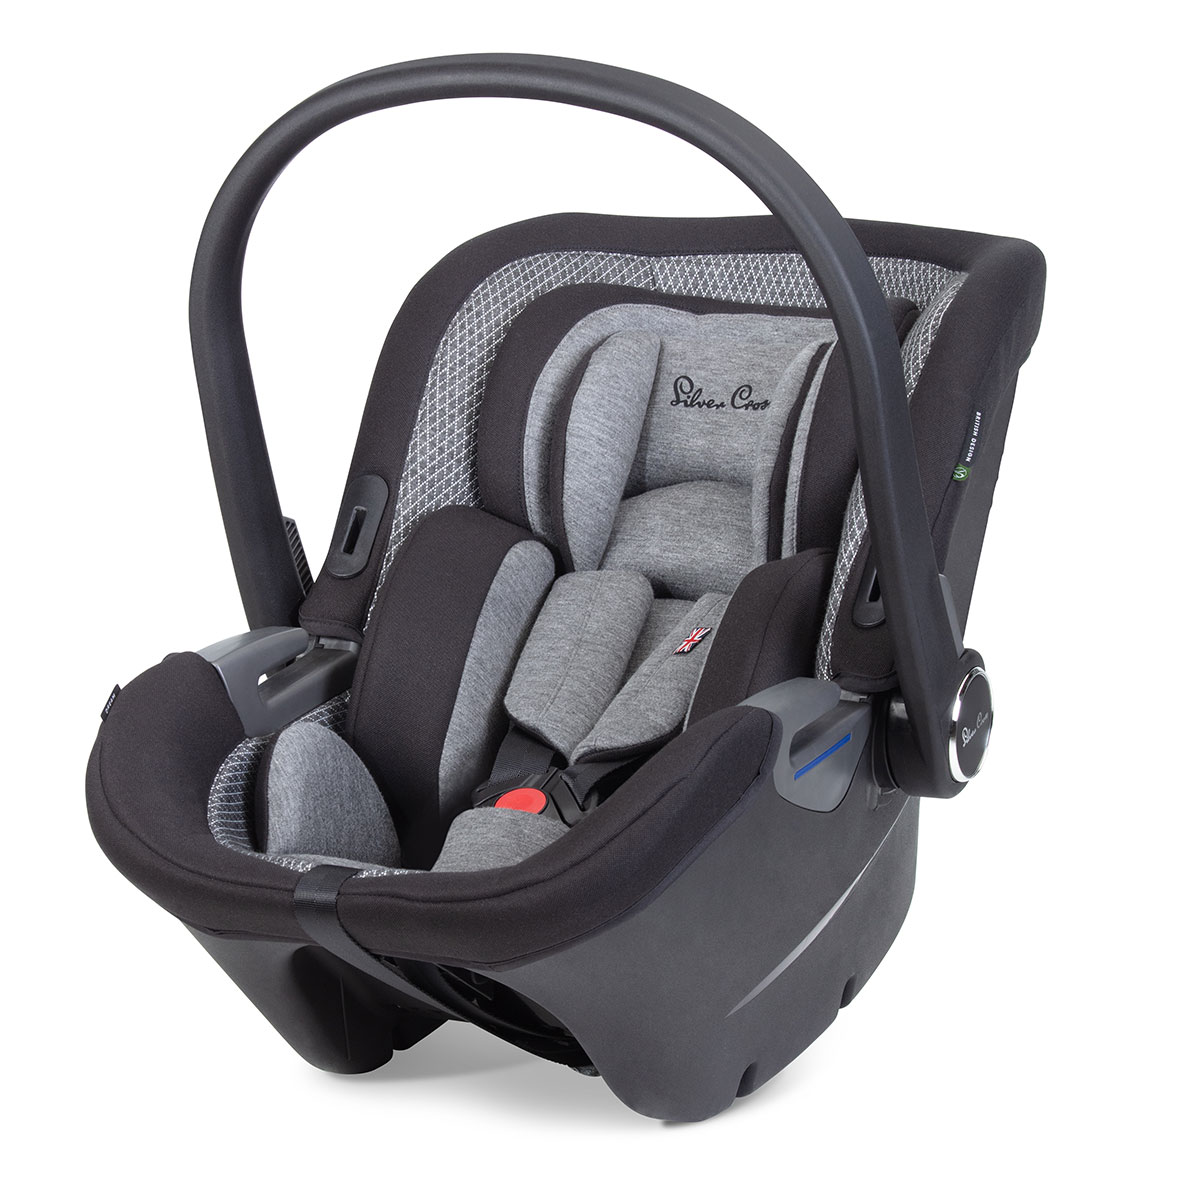 Infant Seat Vs Safety Seat Silver Cross Dream Car Seat Infant Carrier From Birth